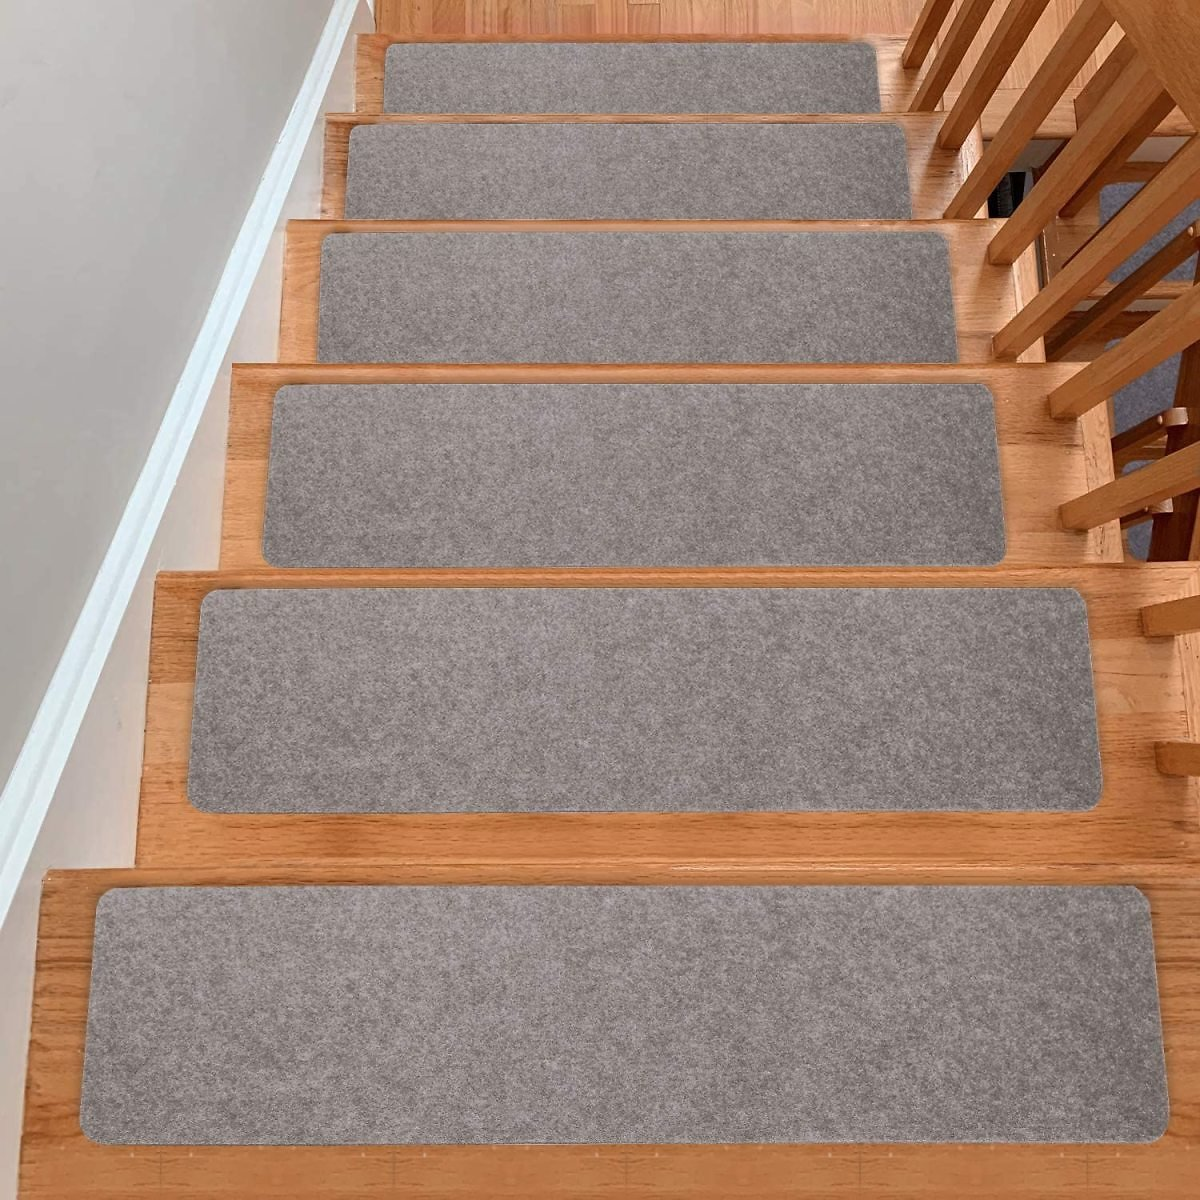 "YESURPRISE Carpets Stair Treads Set of 15, Non-Slip Self Adhesive Stairway Carpet Felts 8"" X 30"